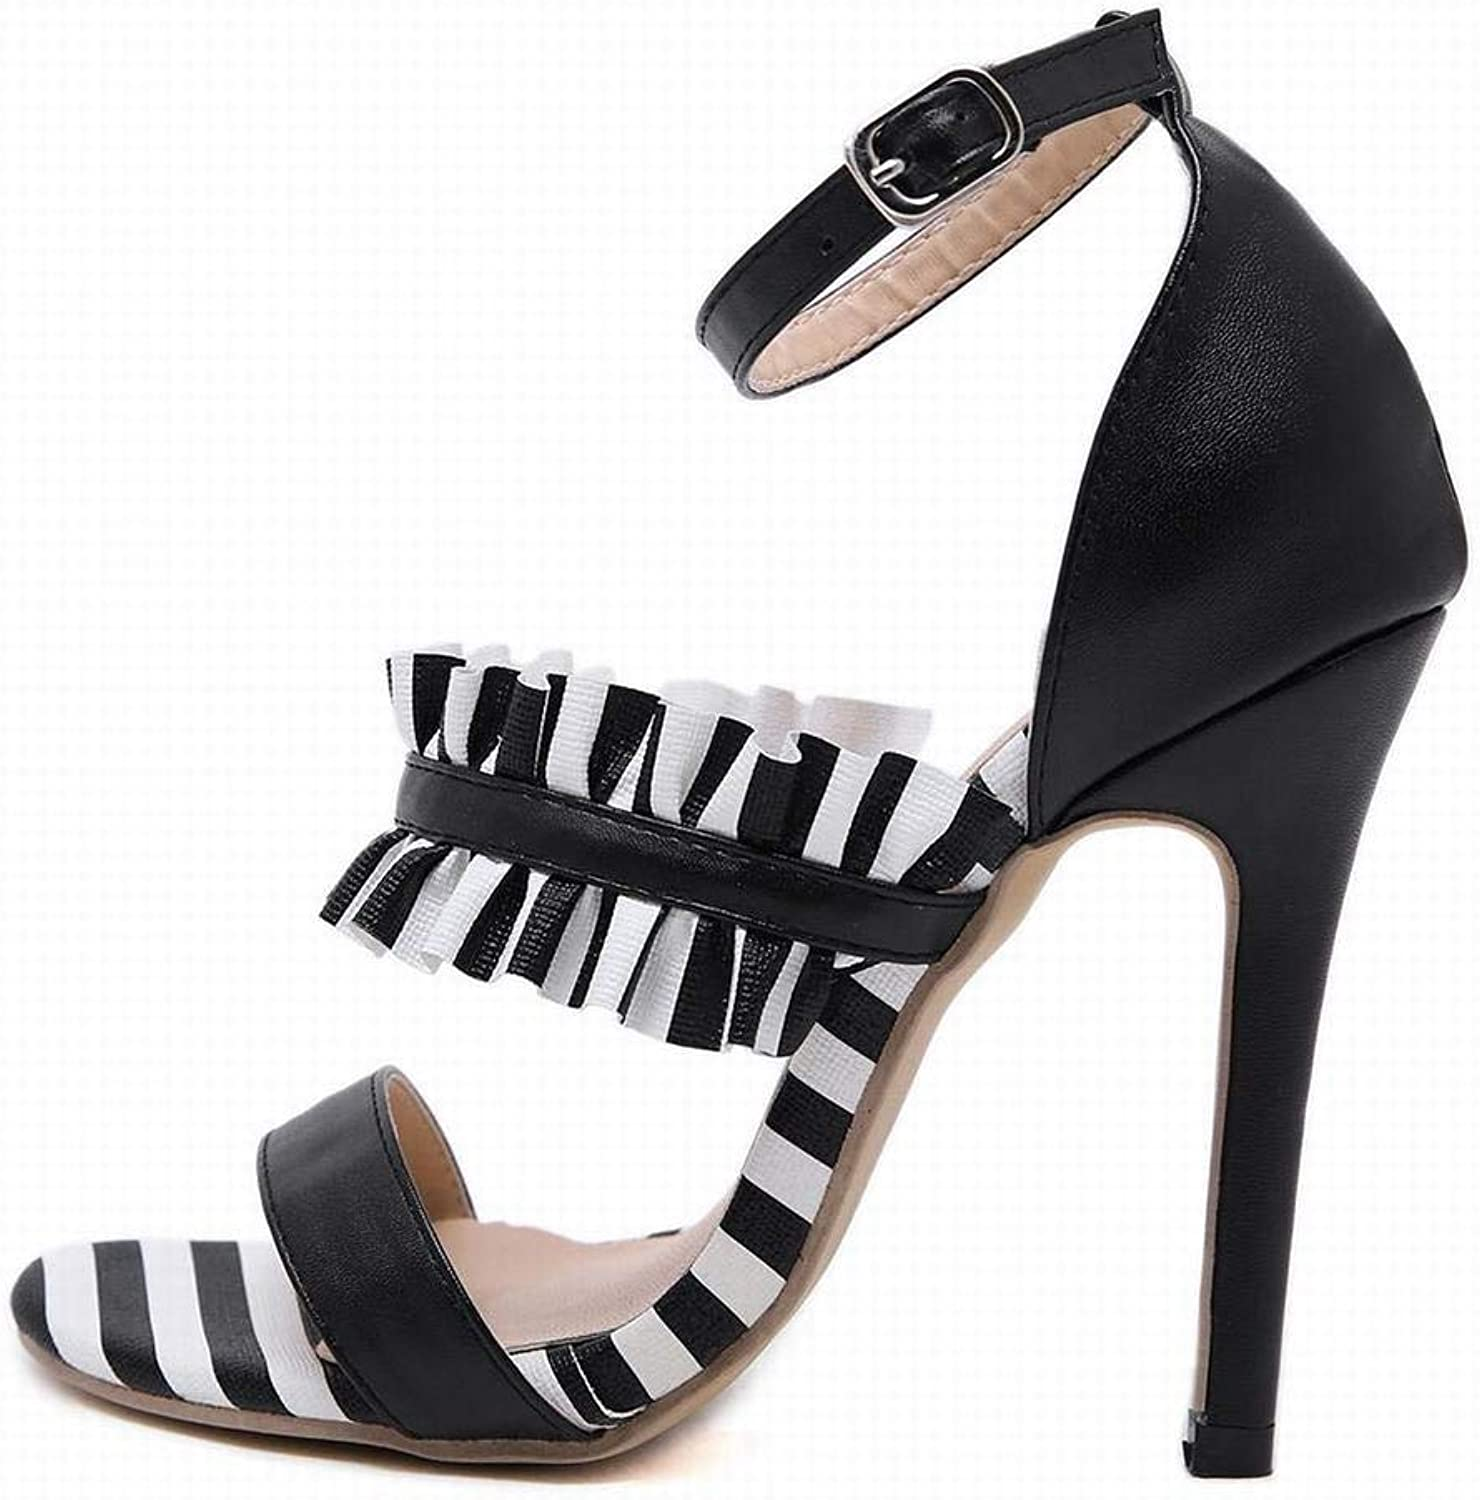 KRPENRIO Women's High Heel Sandals Sexy Black And White Striped Stiletto Heels